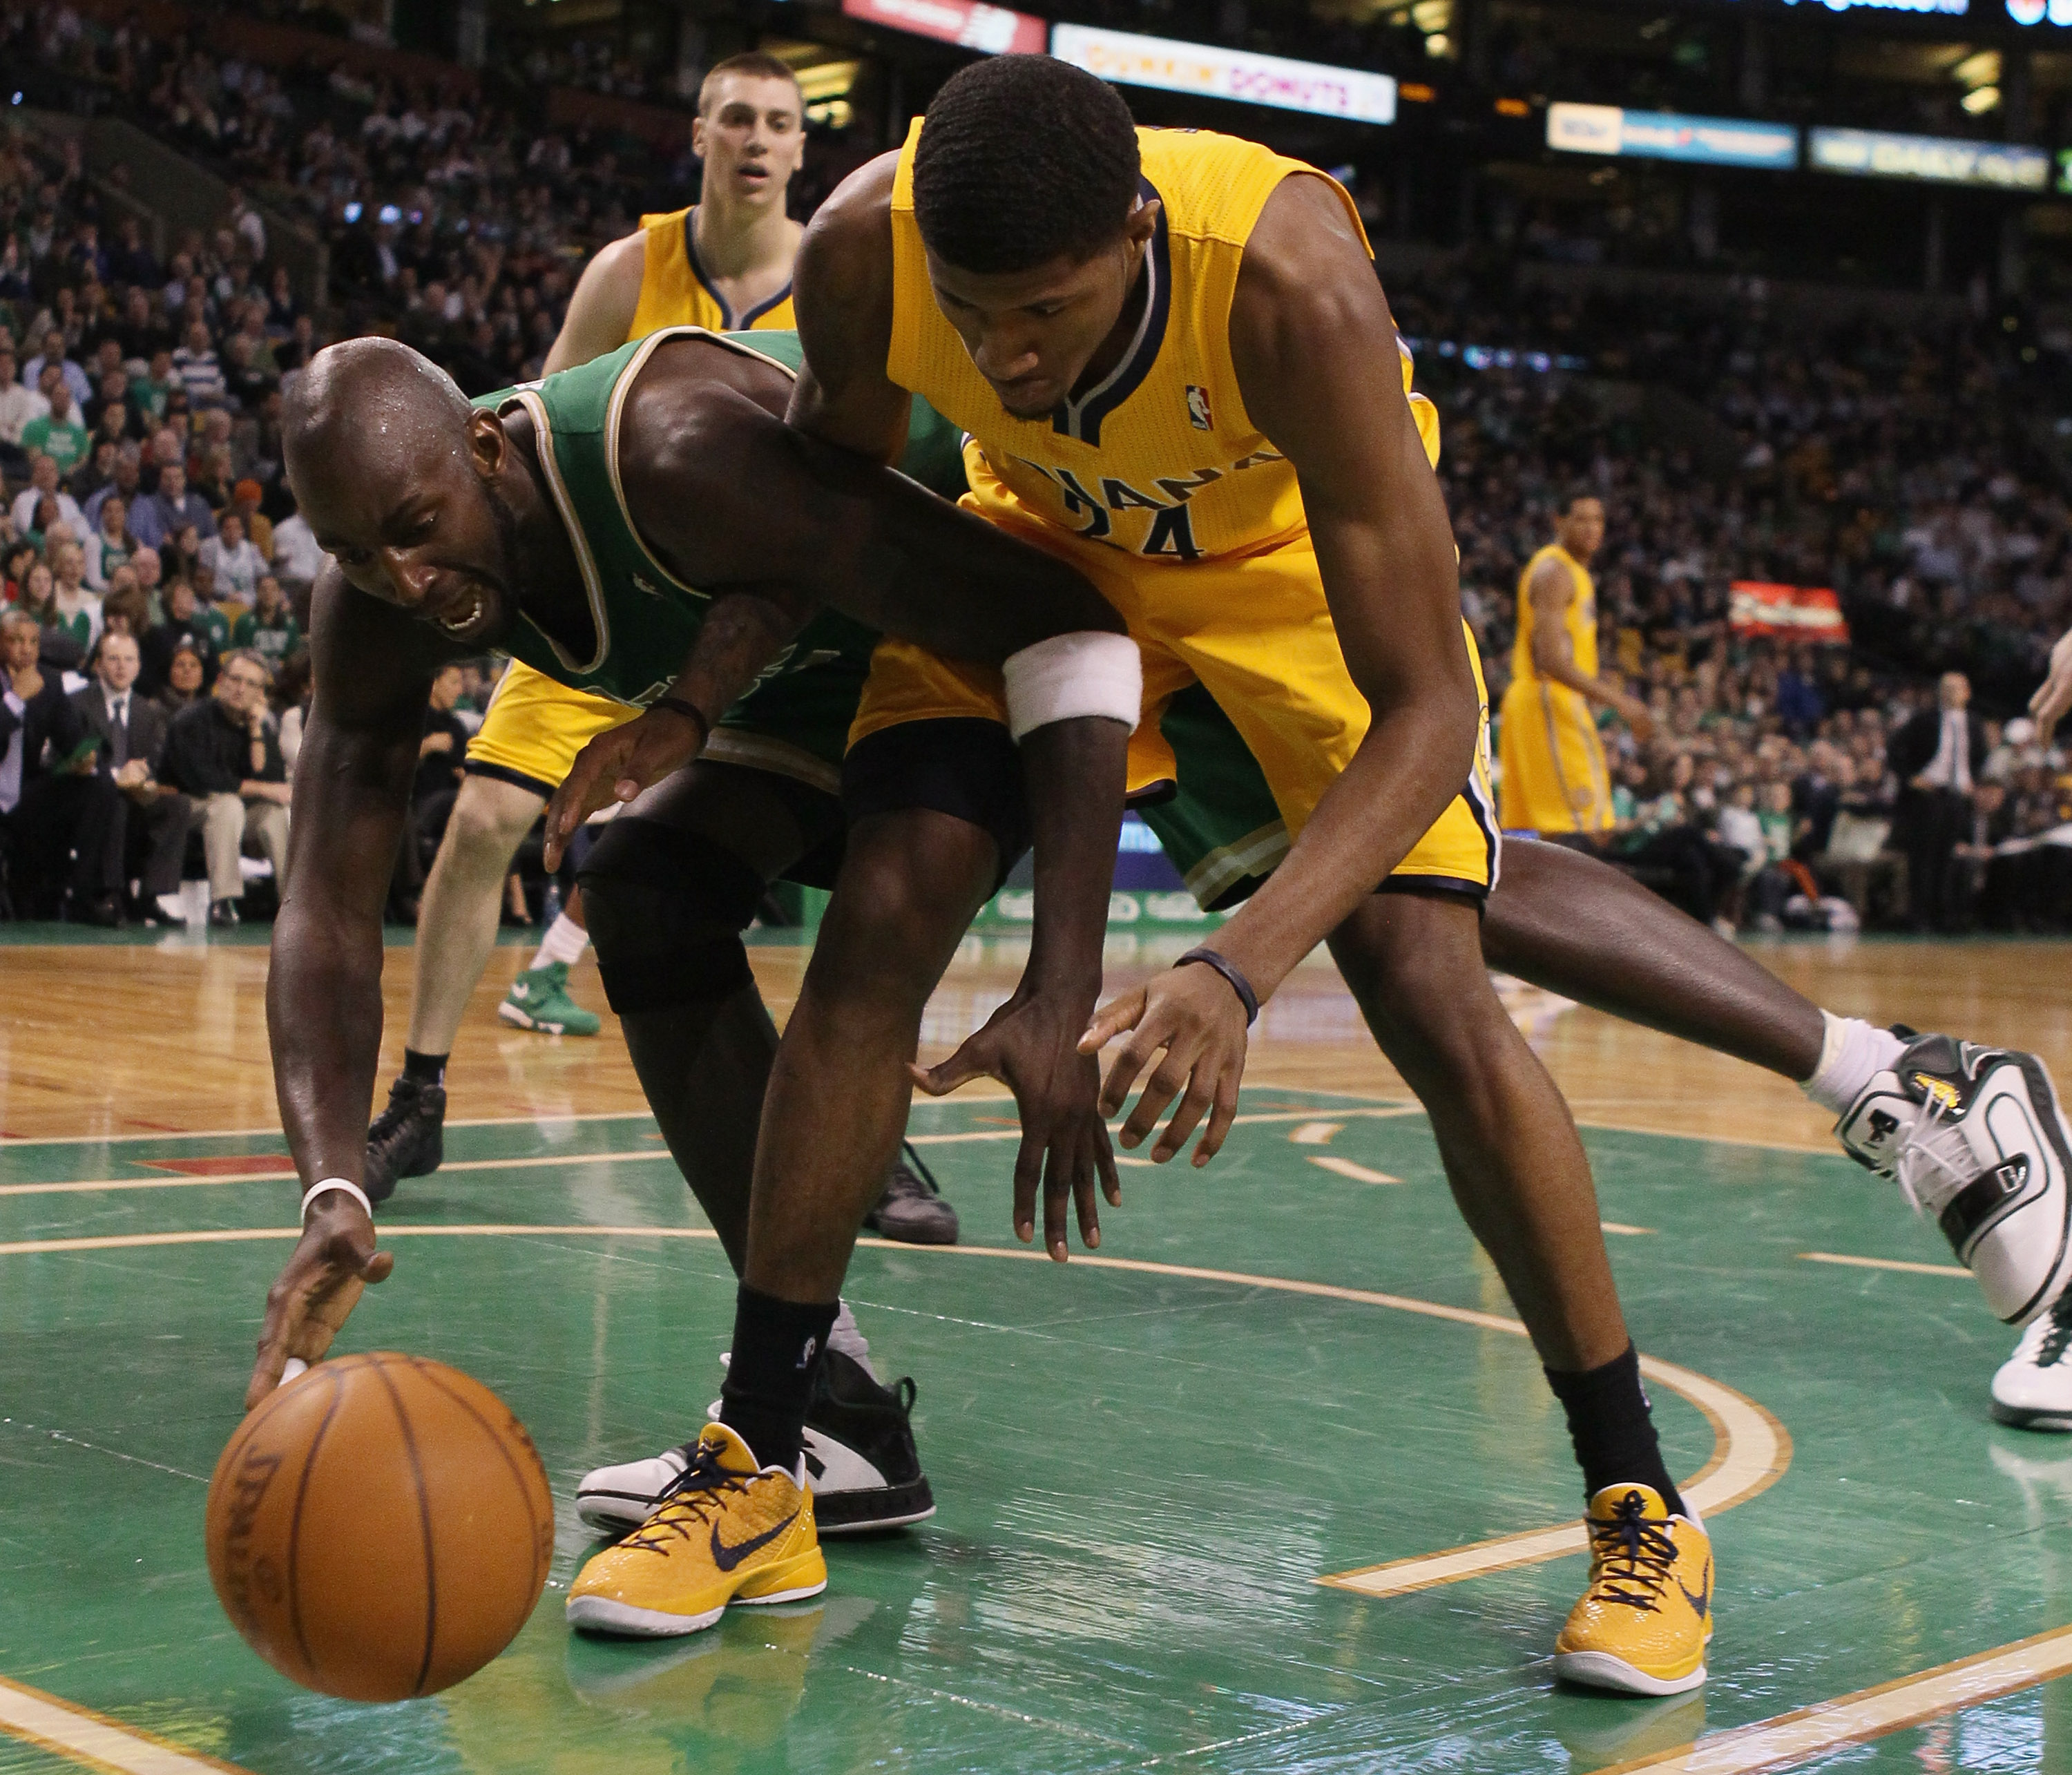 BOSTON, MA - MARCH 16:  Kevin Garnett #5 of the Boston Celtics and Paul George #24 of the Indiana Pacers go after the ball on March 16, 2011 at the TD Garden in Boston, Massachusetts. The Celtics defeated the Indiana Pacers 92-80. NOTE TO USER: User expre